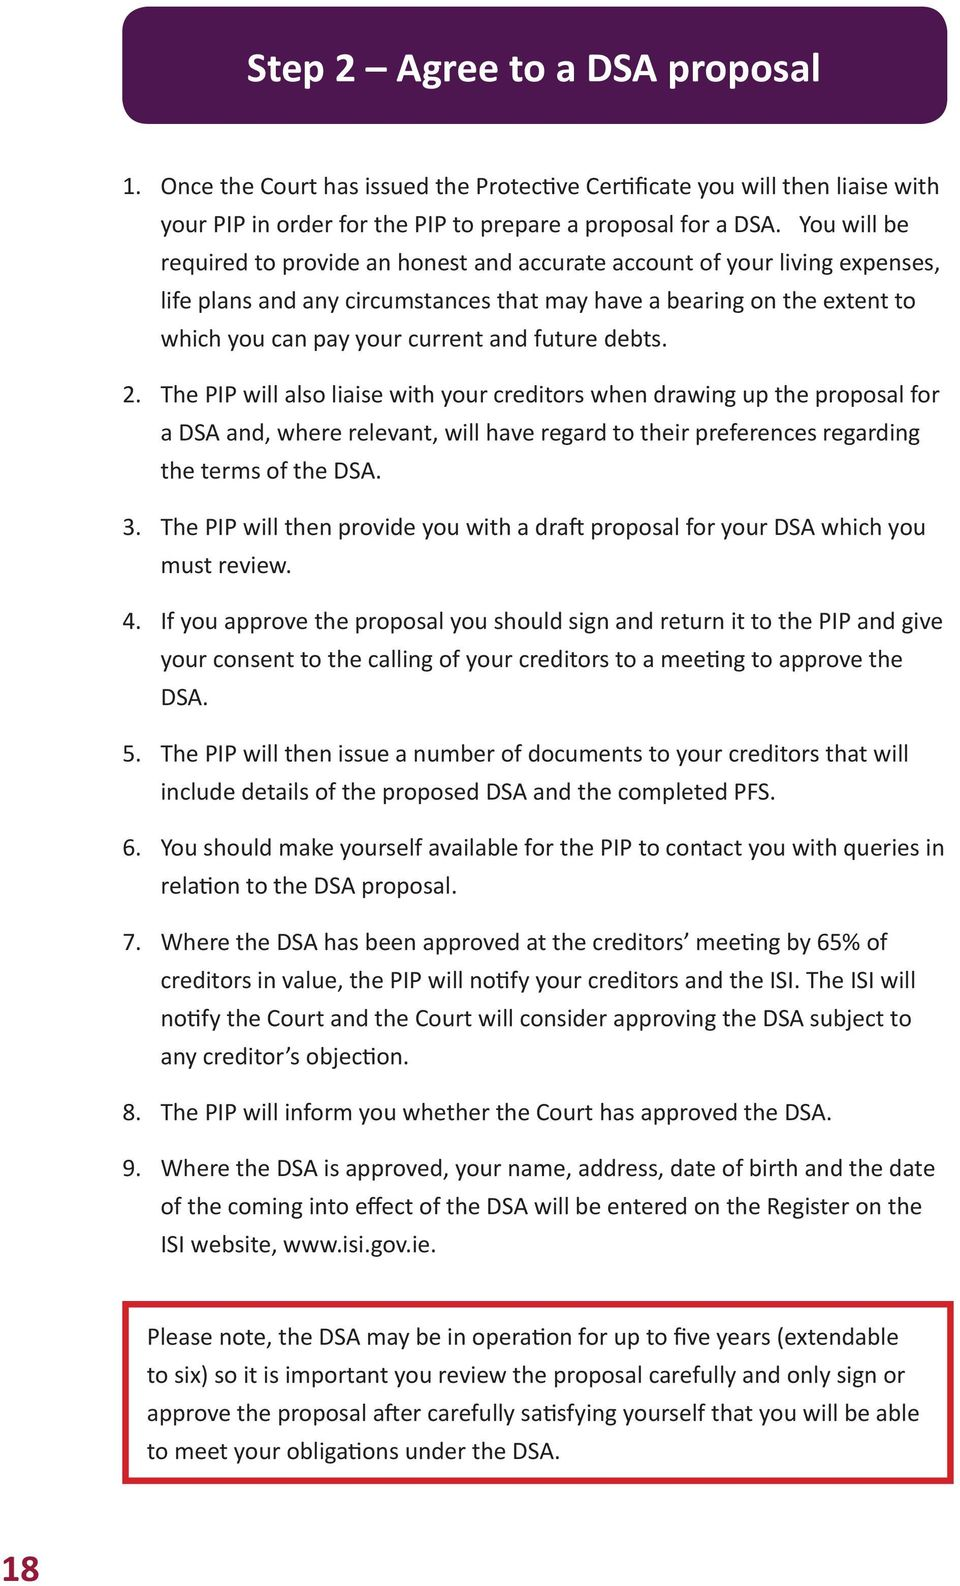 future debts. 2. The PIP will also liaise with your creditors when drawing up the proposal for a DSA and, where relevant, will have regard to their preferences regarding the terms of the DSA. 3.